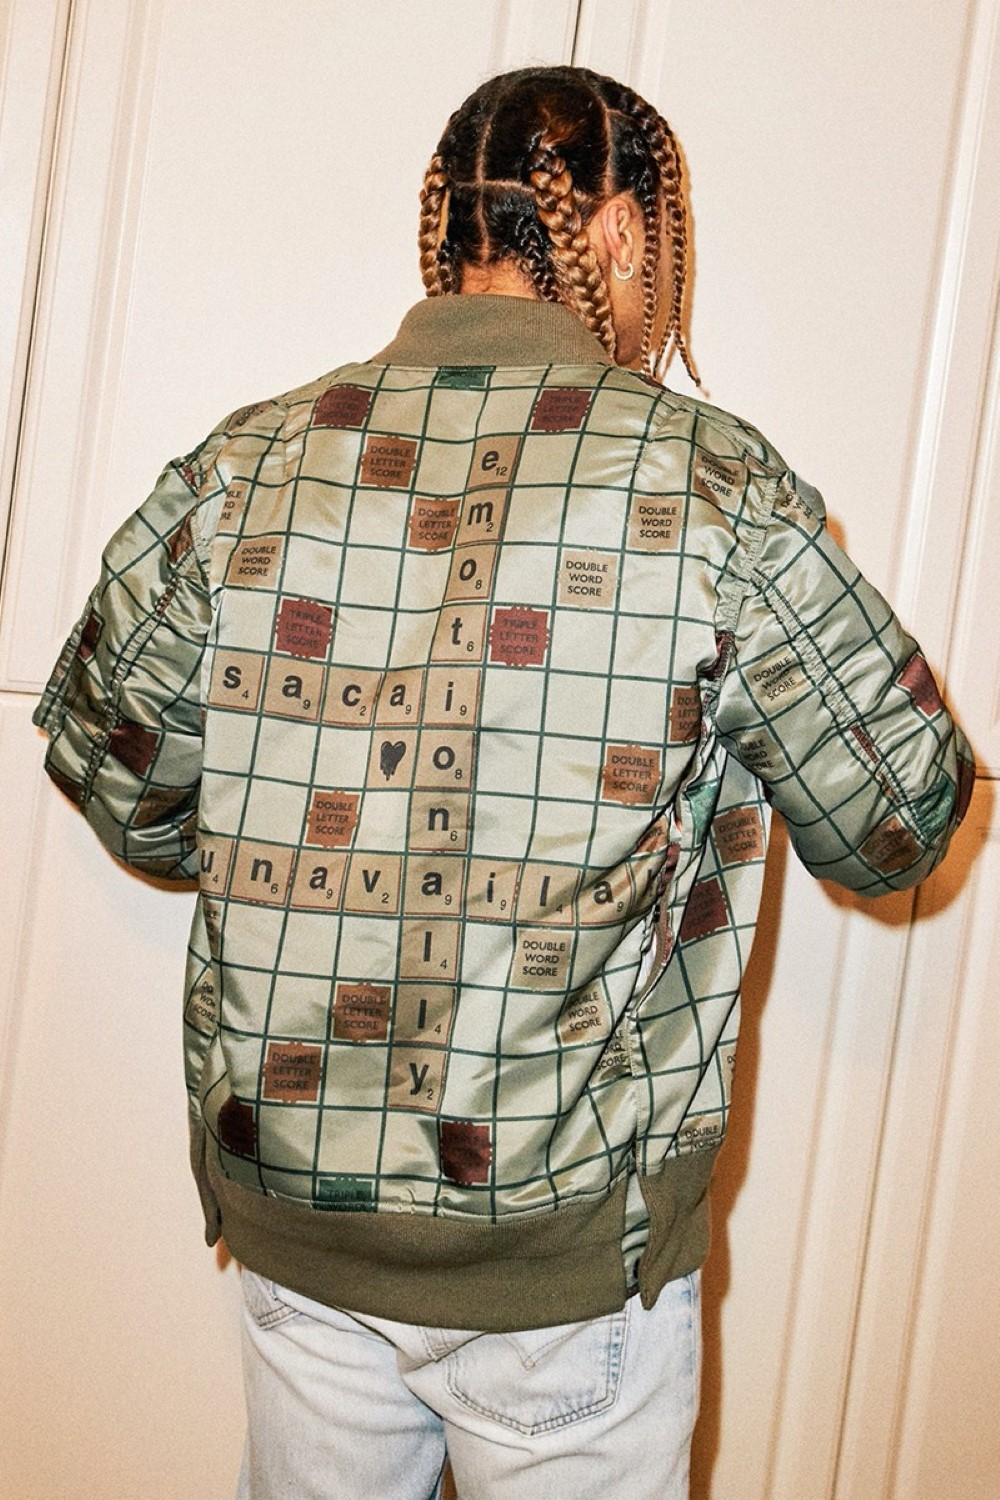 sacai x Emotionally Unavailable - Collection Scrabble